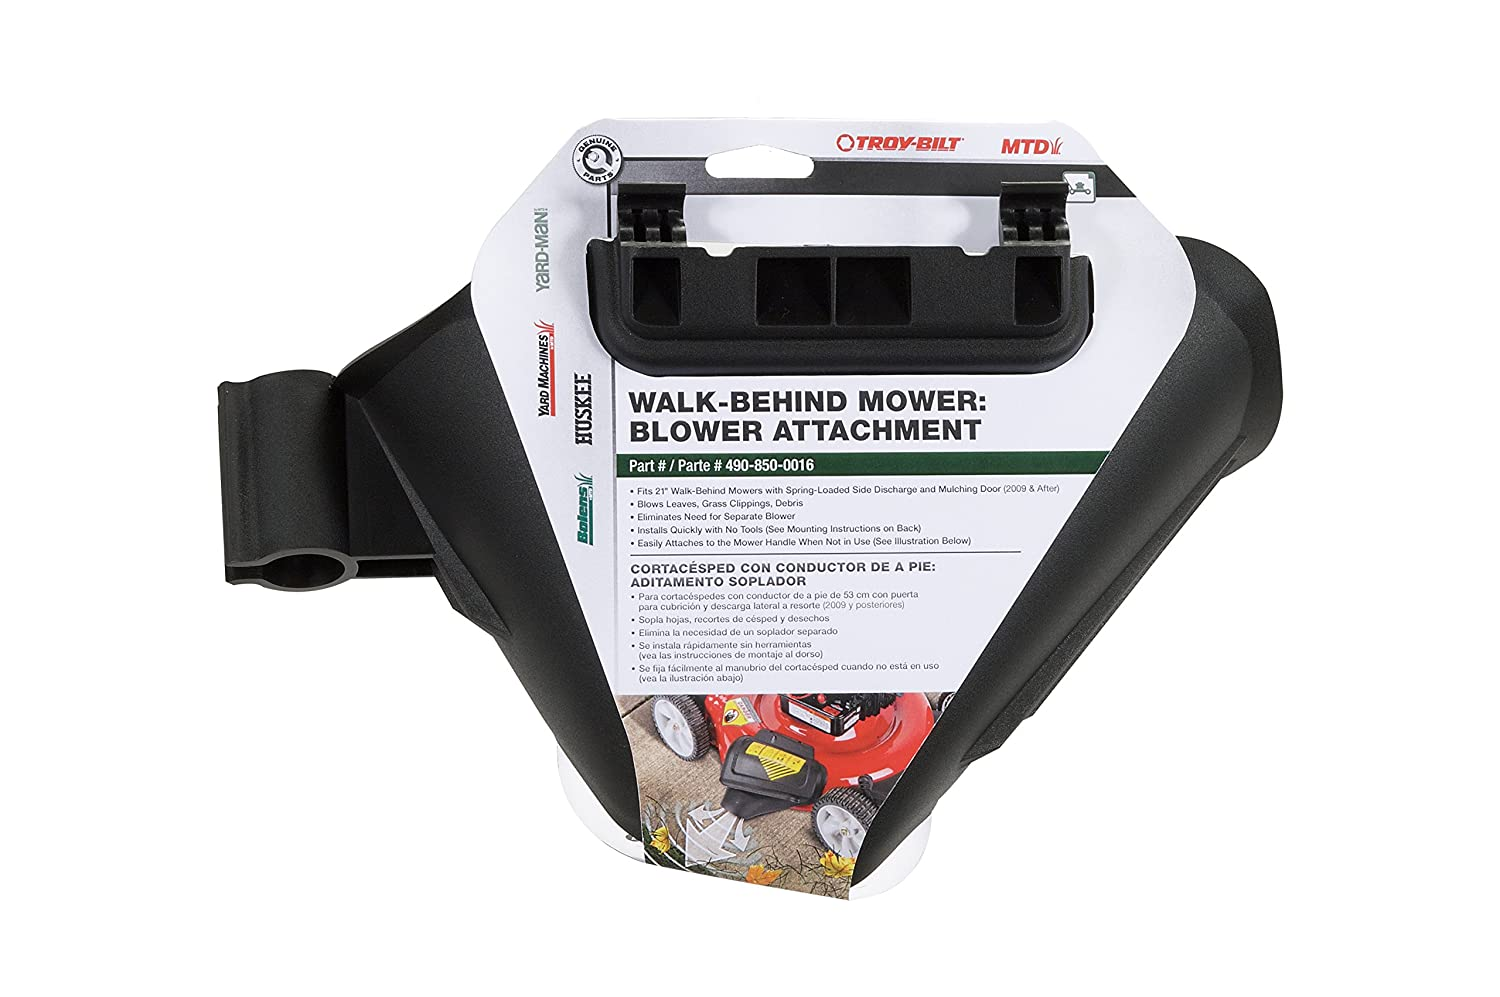 Amazon.com : Arnold MTD Genuine Parts 21-Inch Walk-Behind Mower Blower Attachment : Garden & Outdoor